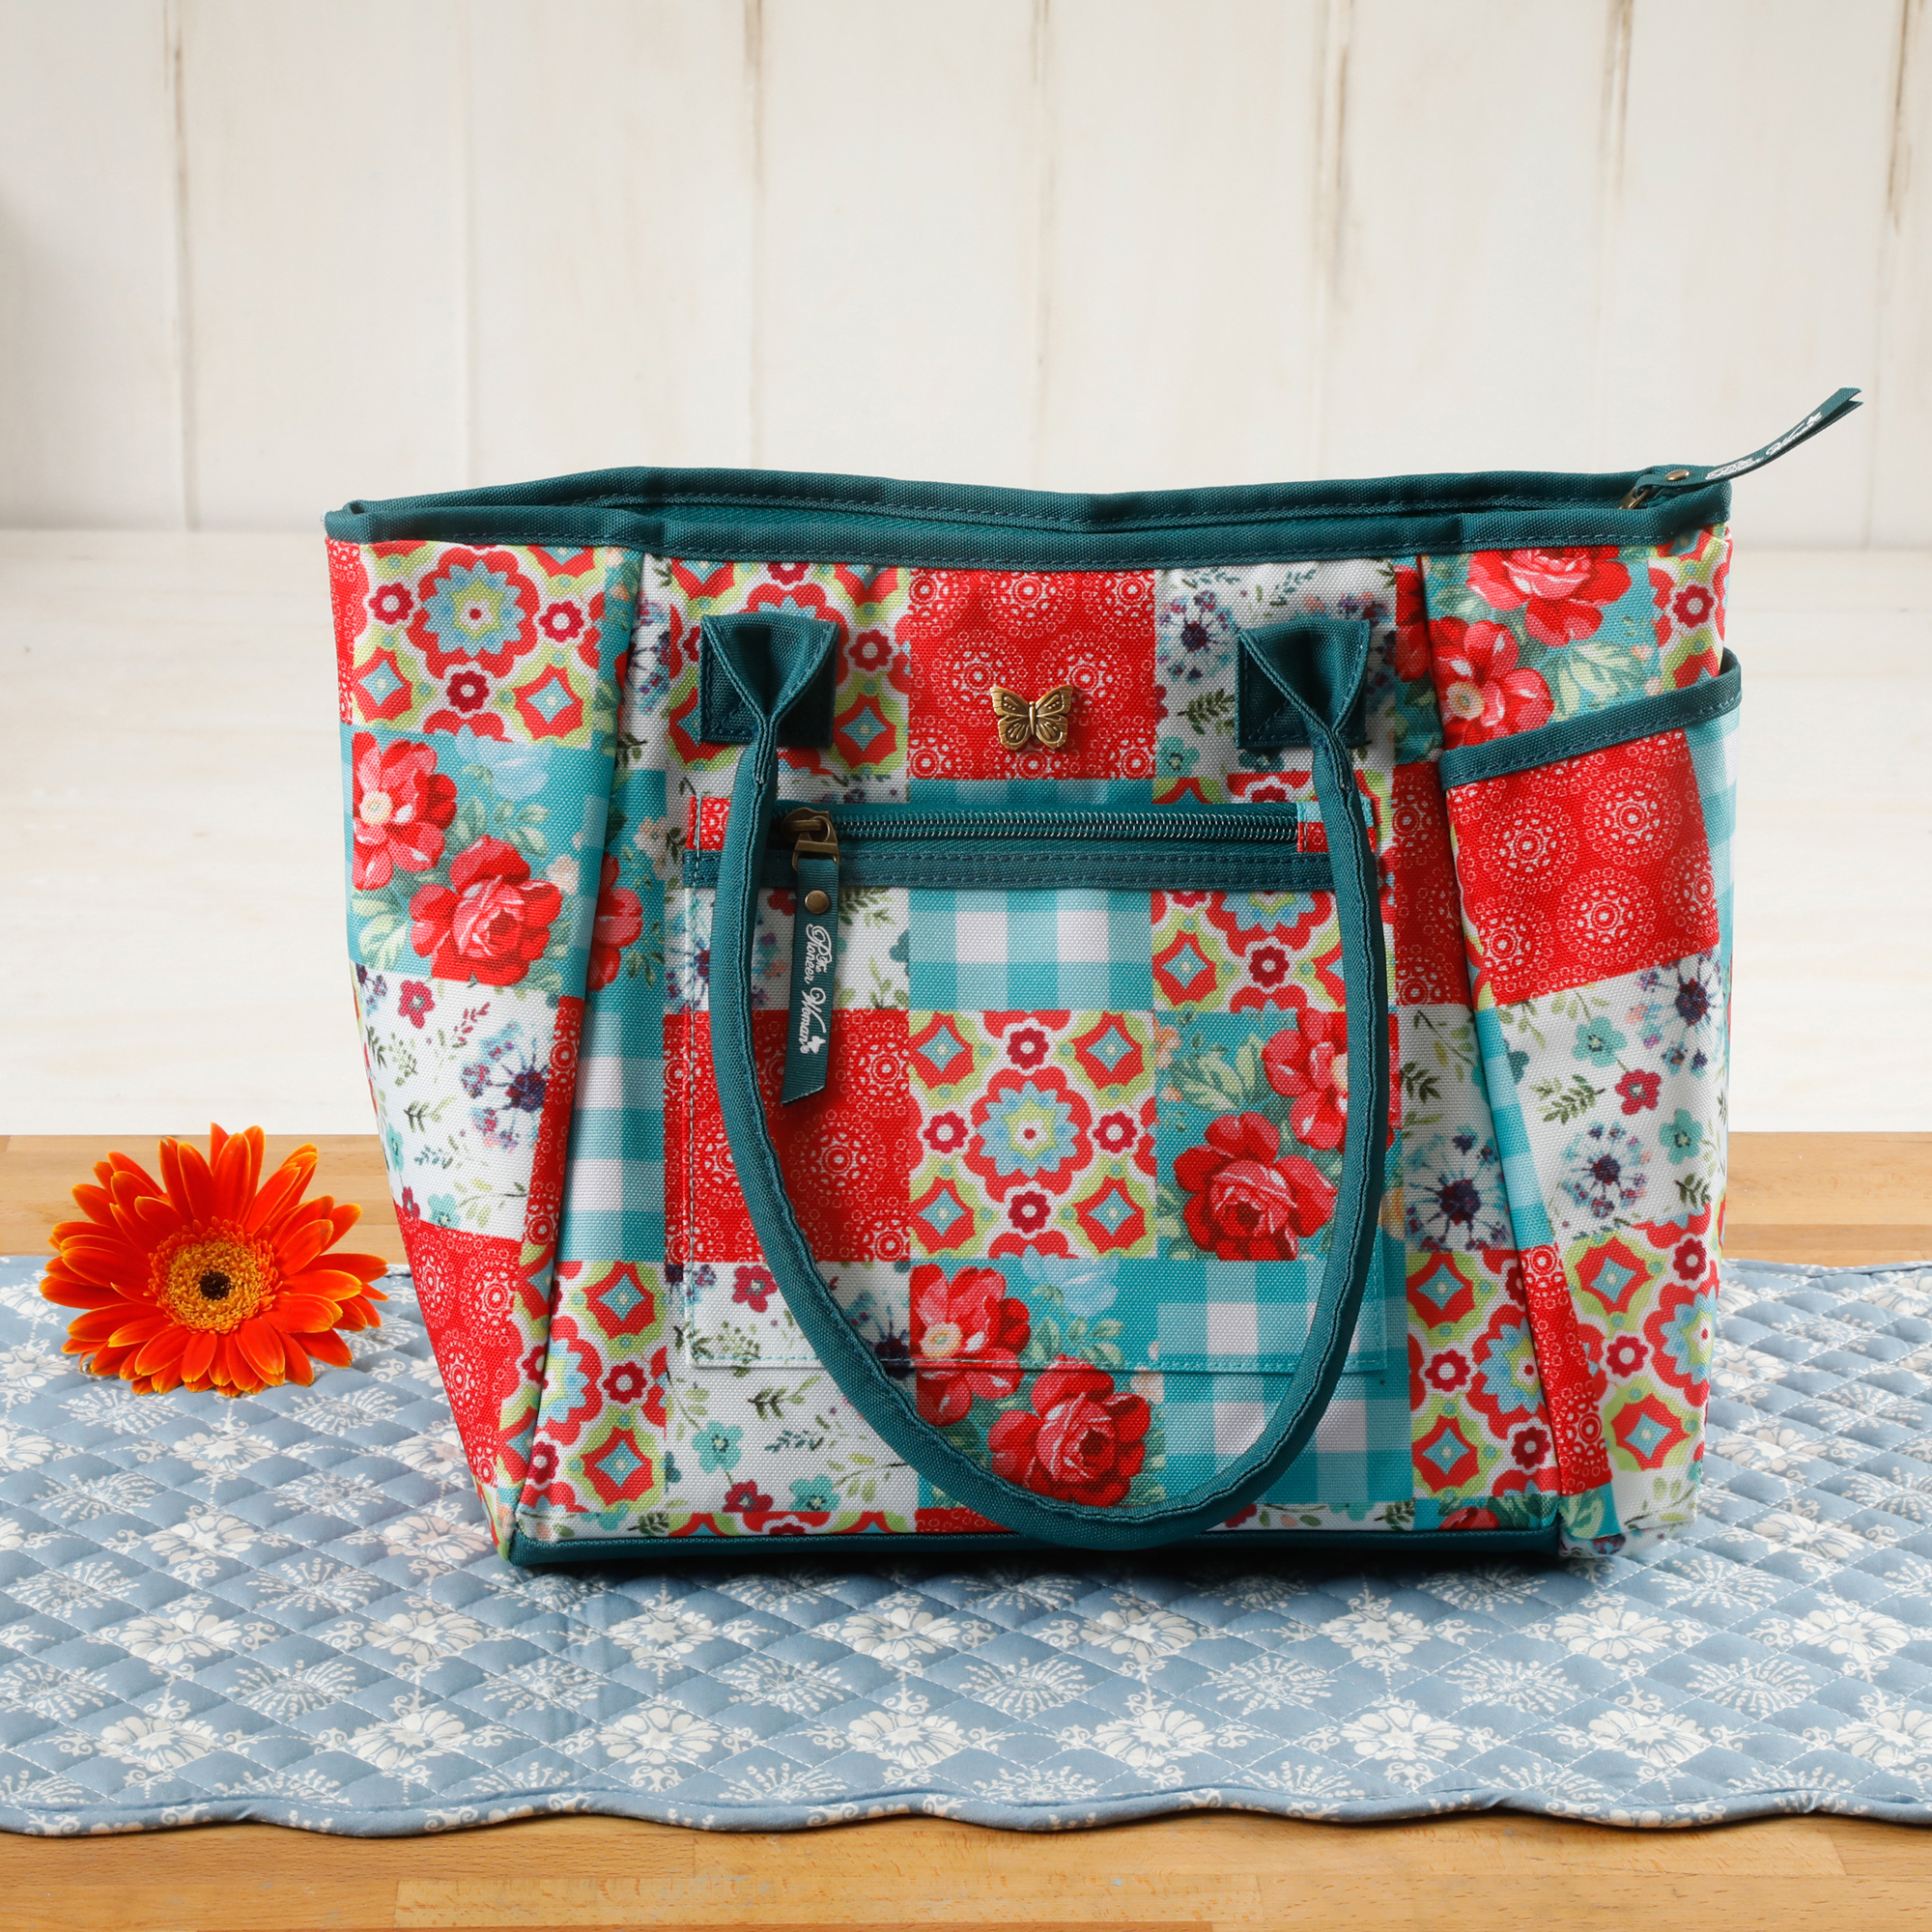 The Pioneer Woman Patchwork Lunch Tote w/ Hydration Bottle